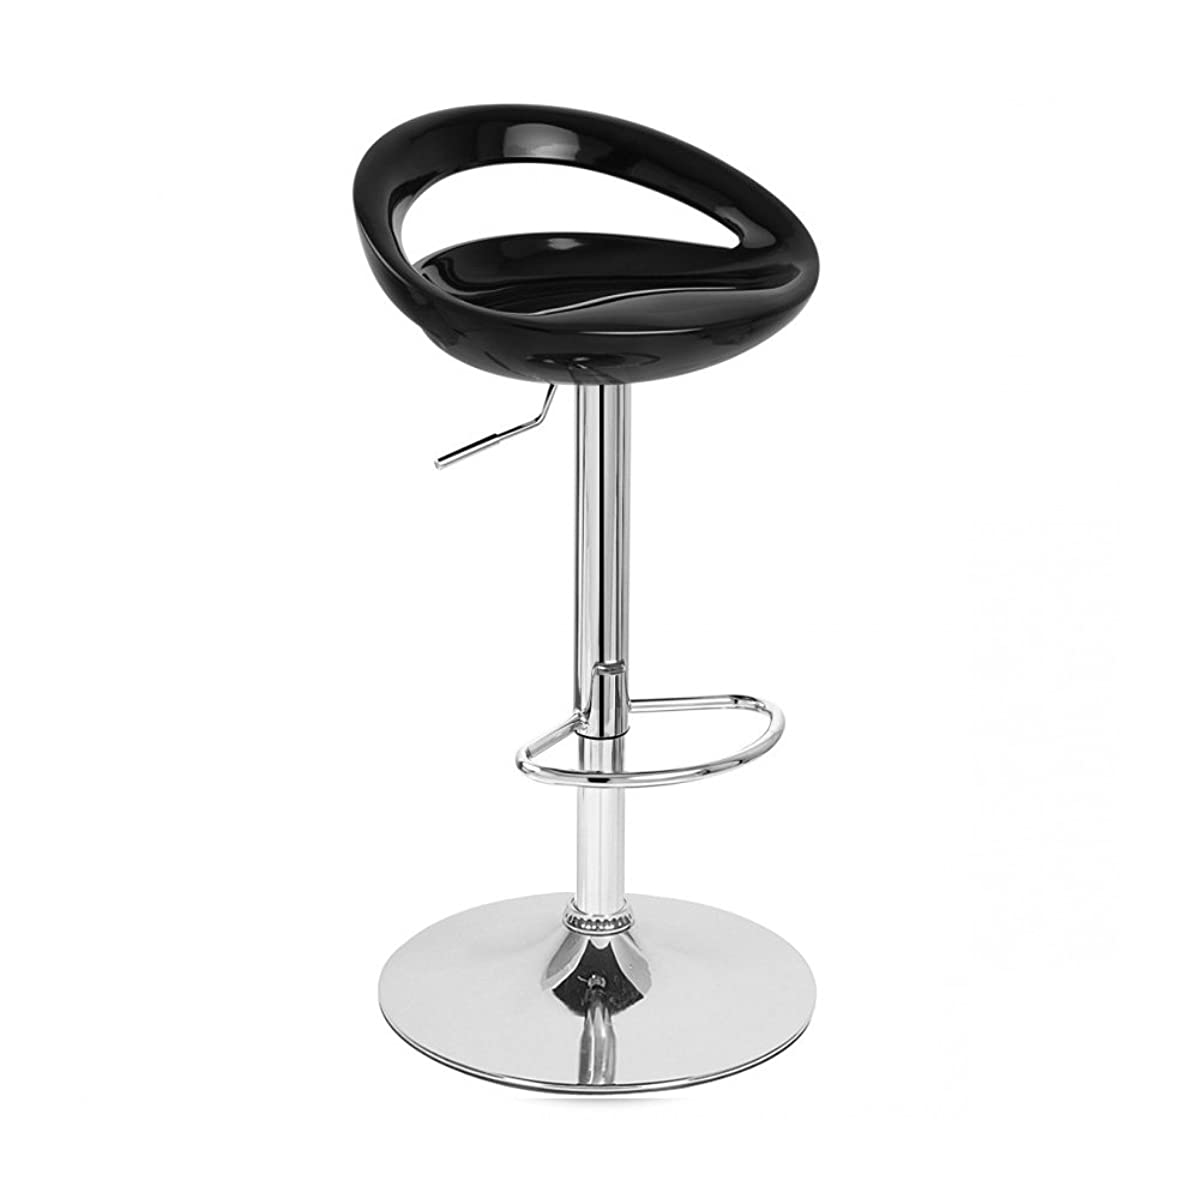 Roundhill Furniture Contemporary Chrome Adjustable Swivel Bar Stool with Black Seat, Set of 2